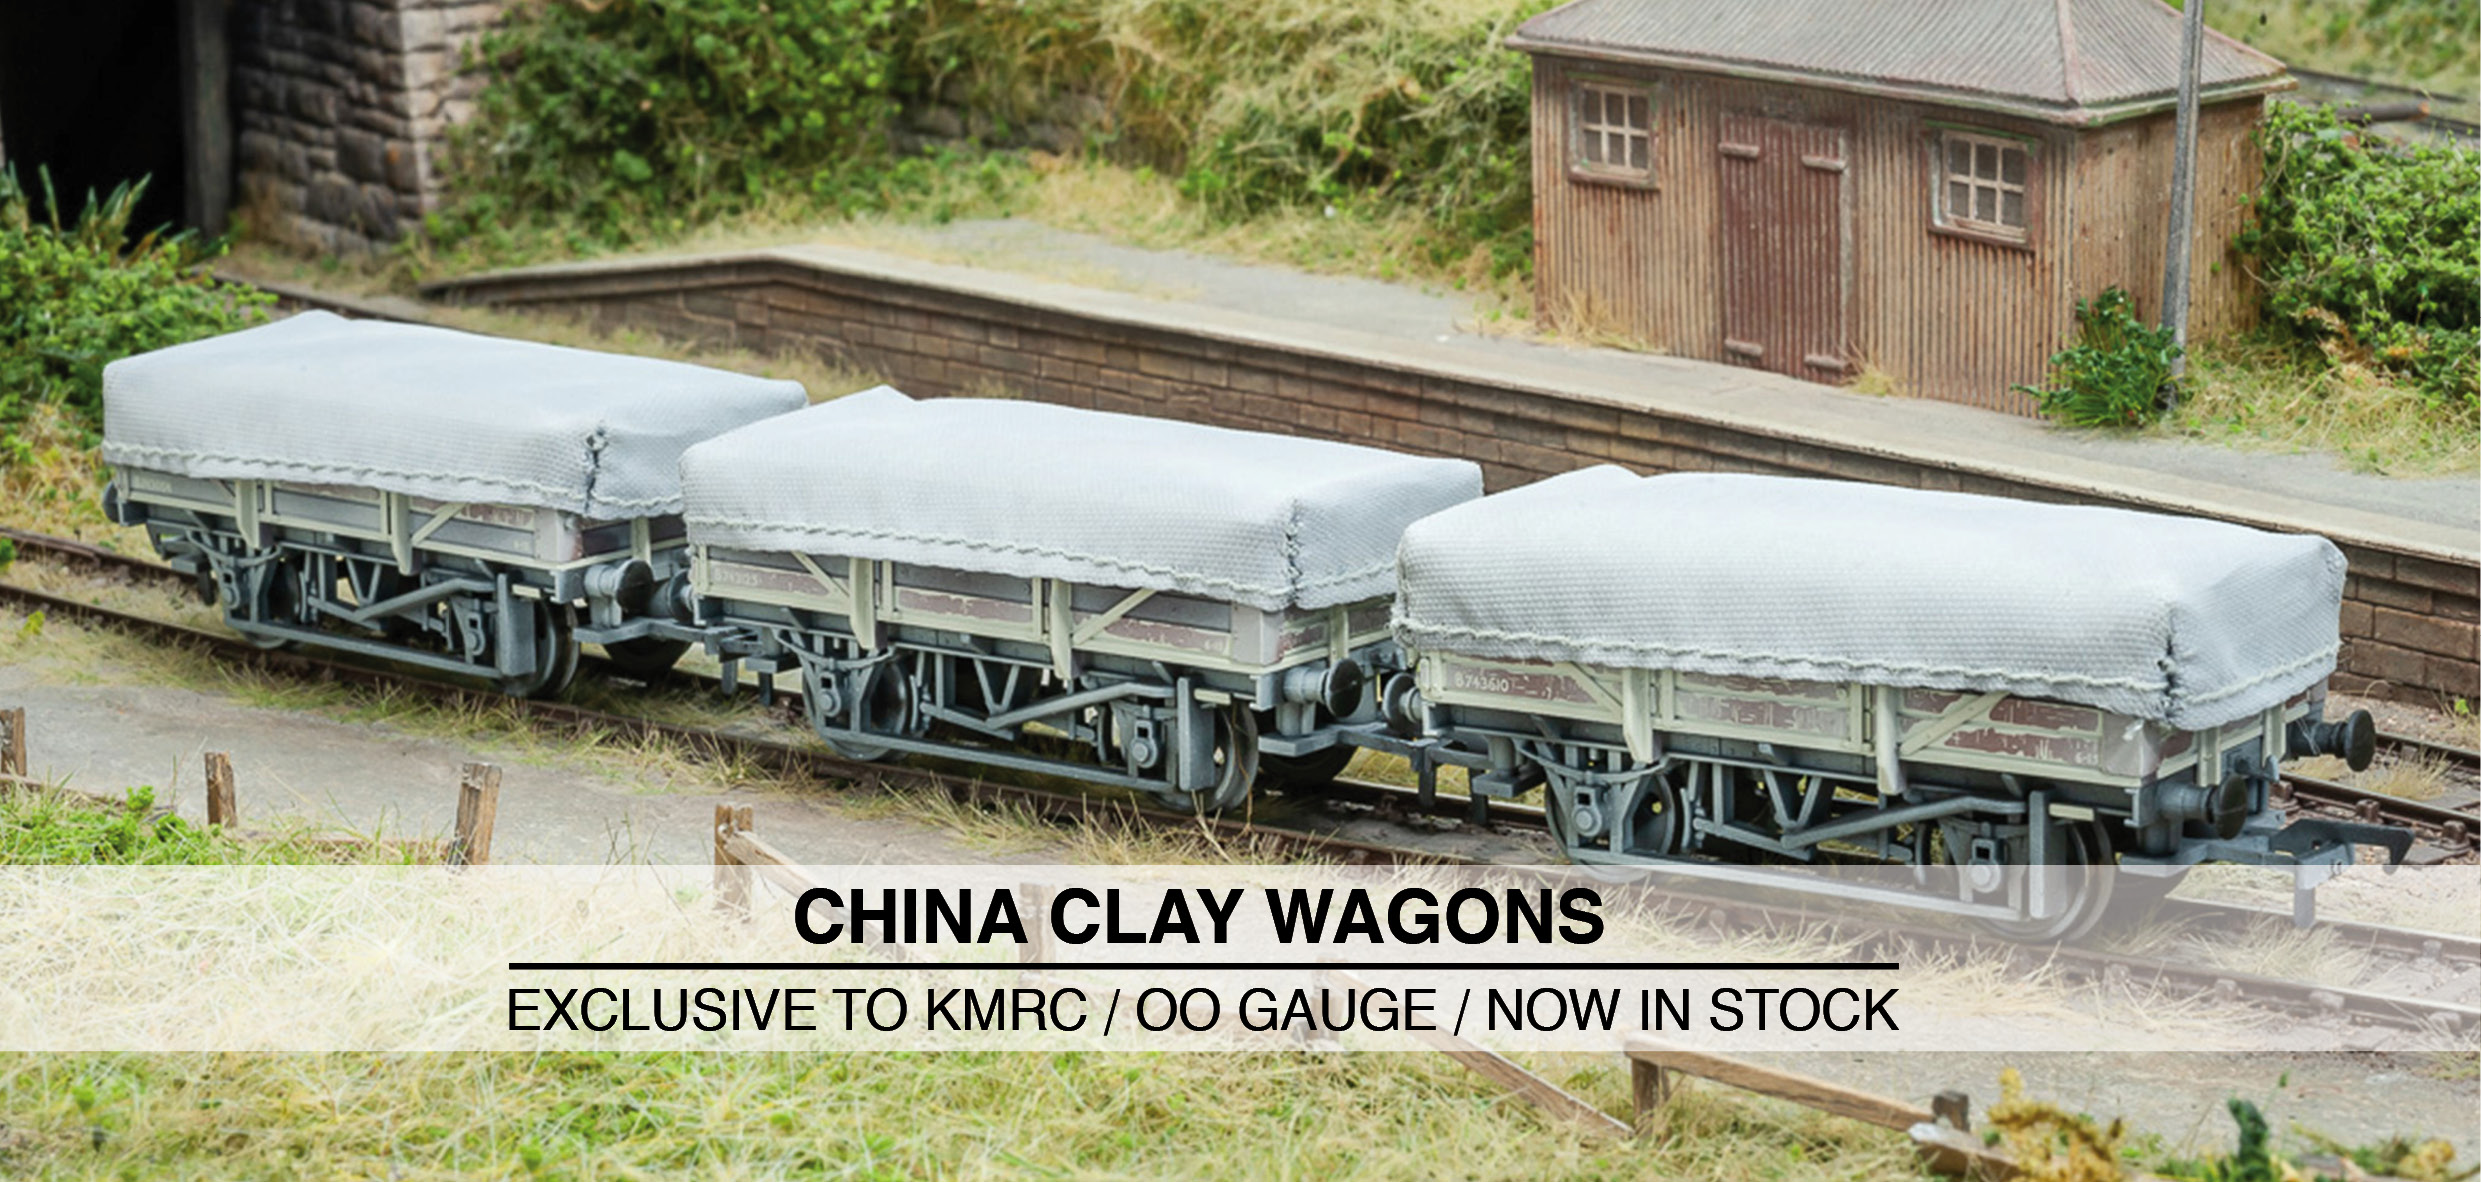 China Clay Wagon Image